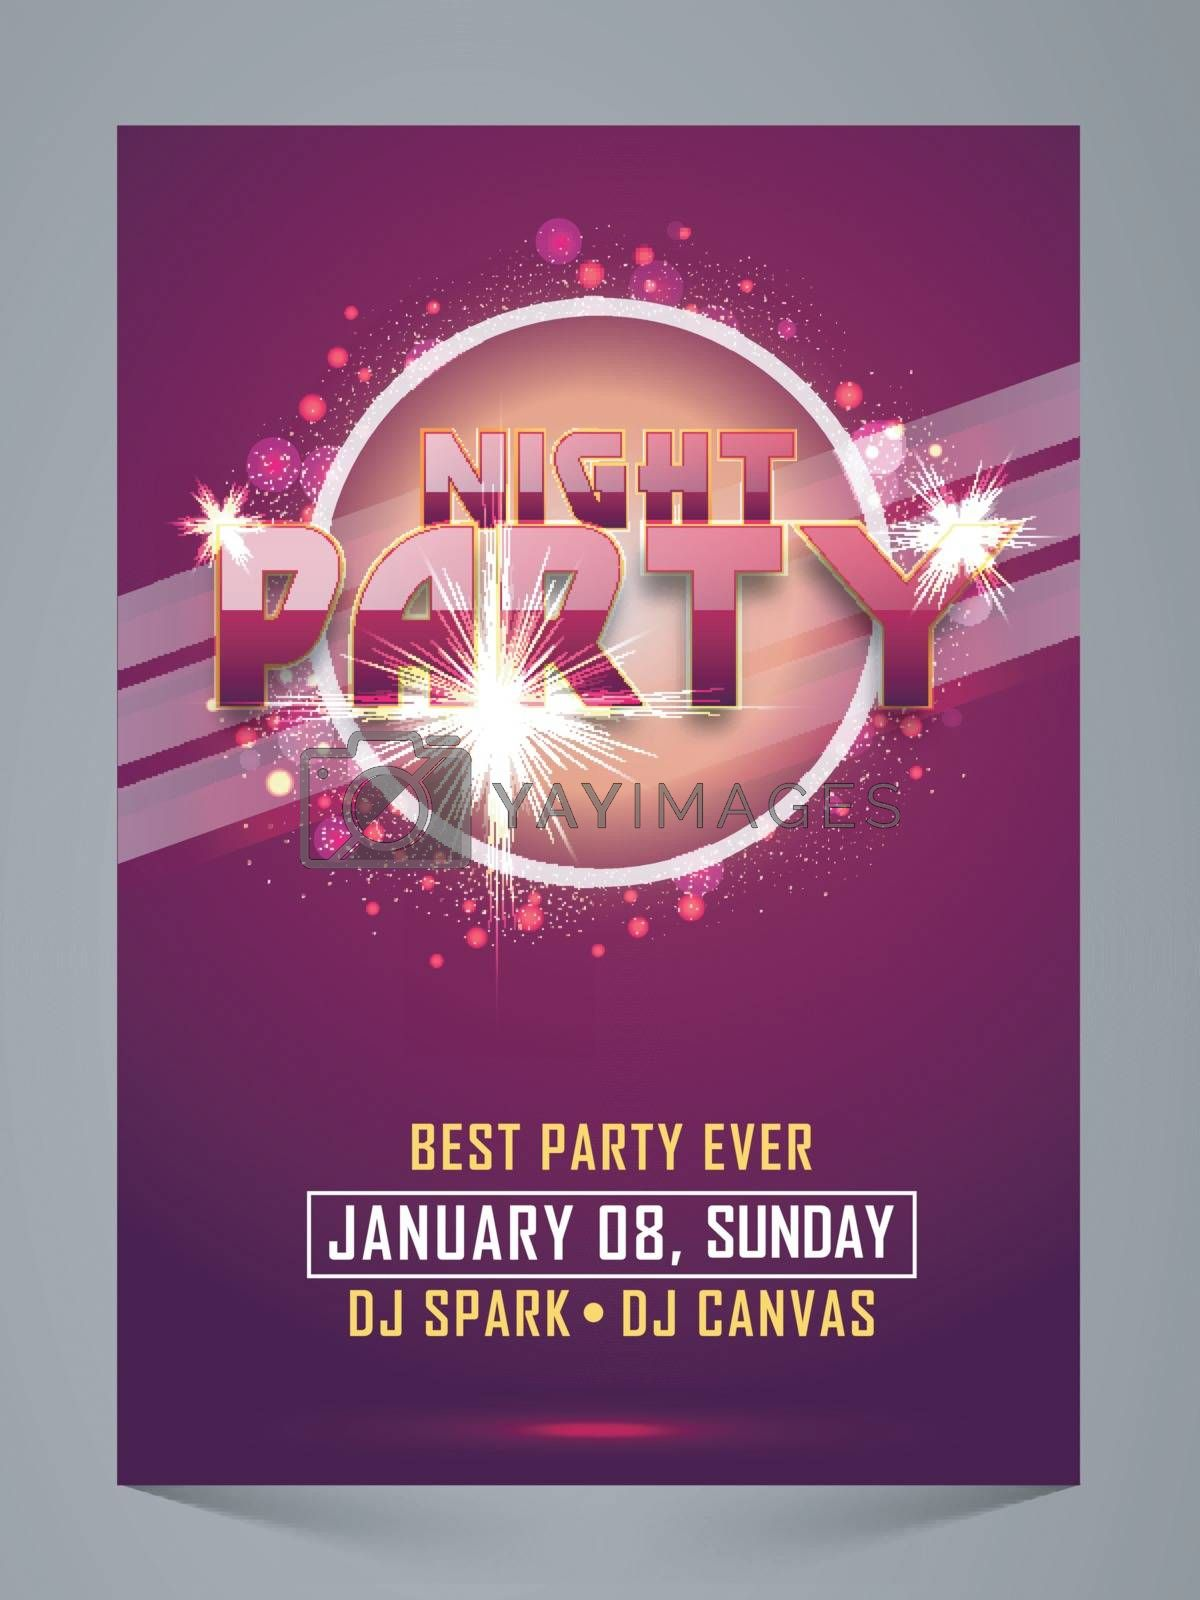 Elegant Night Party Celebration Flyer, Banner, Pamphlet or Invitation Card with sparkling effects.